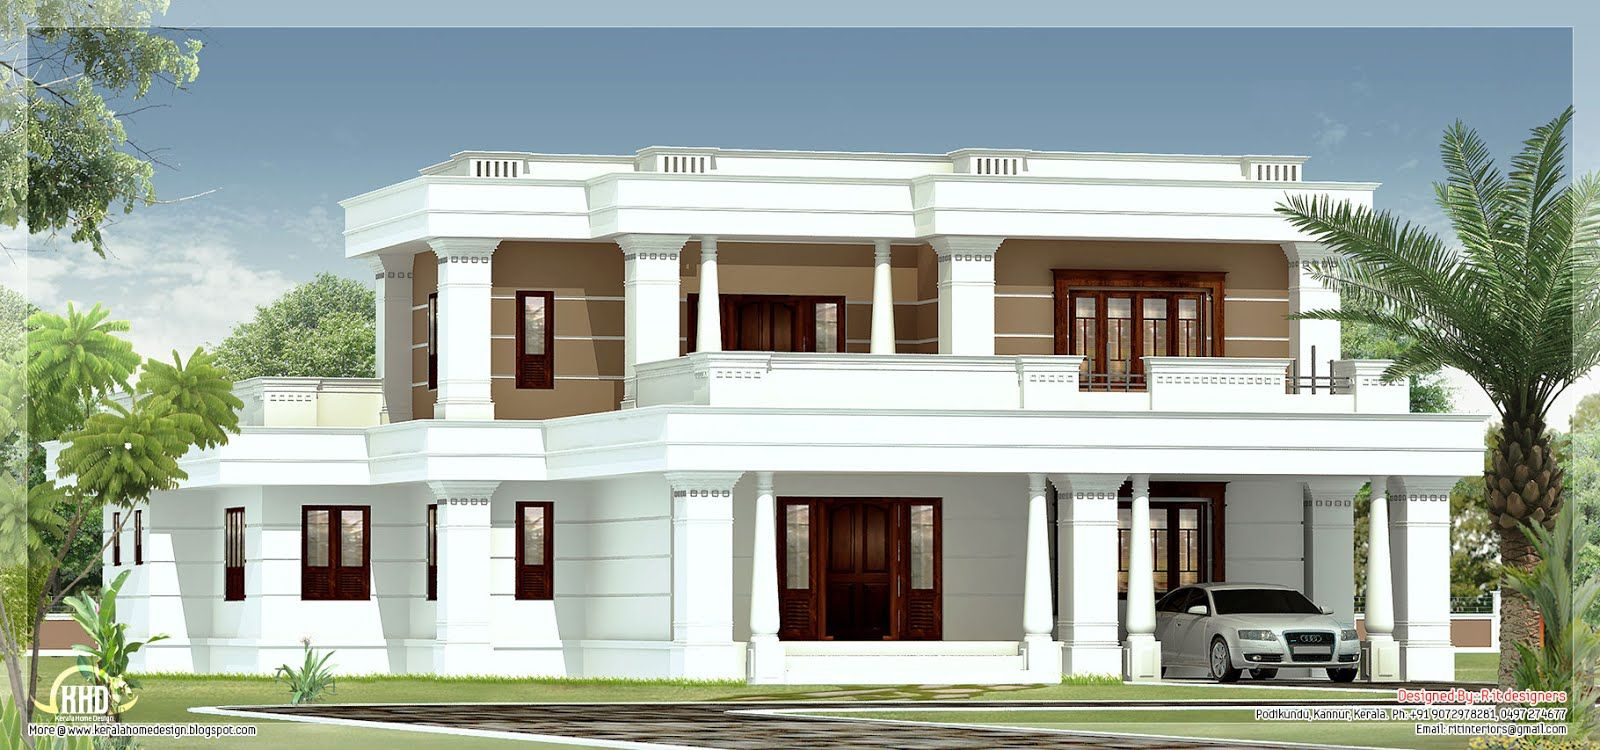 Flat roof homes designs november 2012 kerala home Modern flat roof house designs